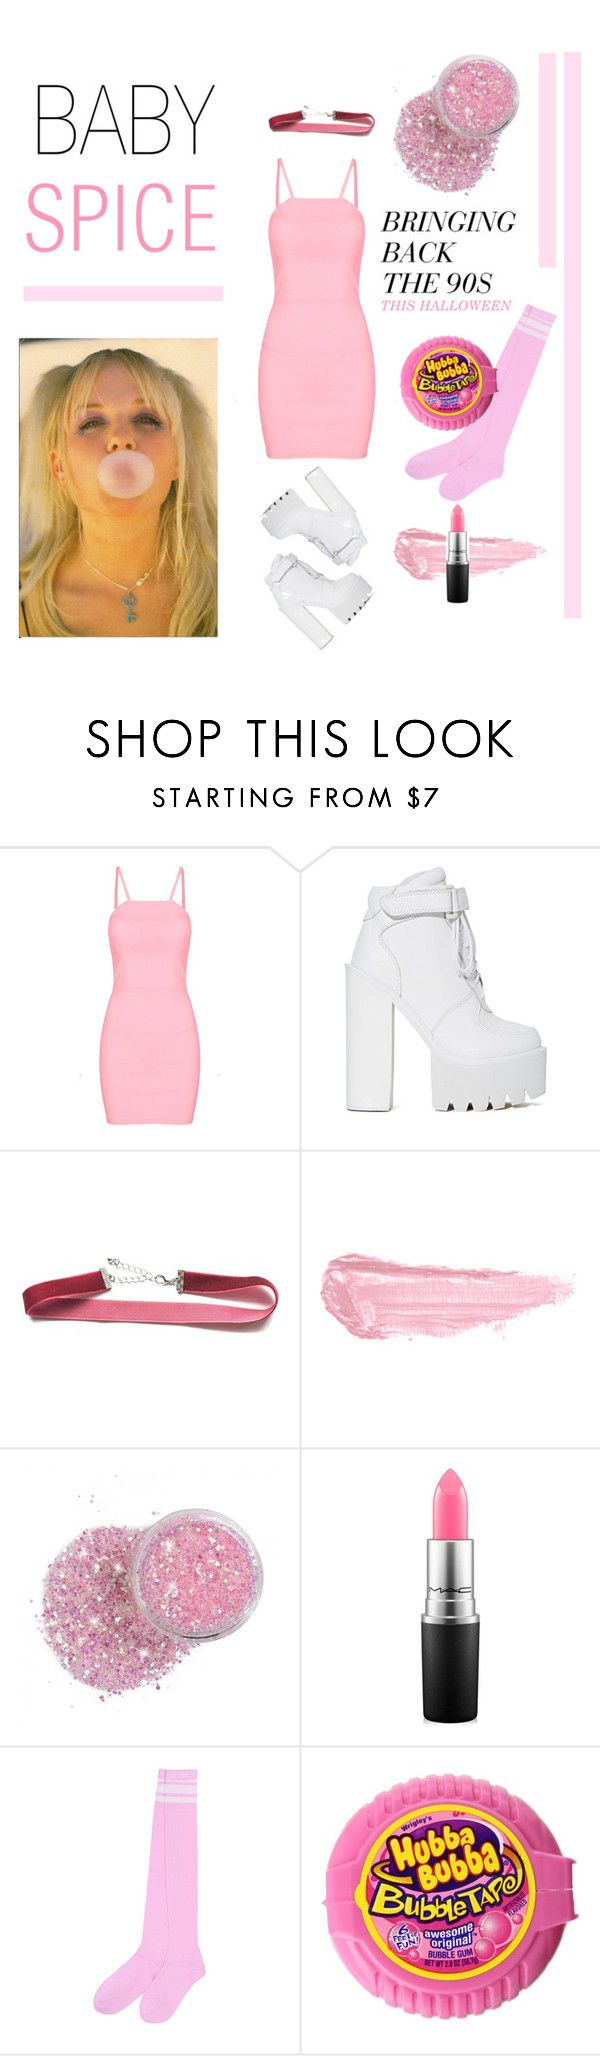 BABY SPICE HALLOWEEN COSTUME by a,le,mode on Polyvore